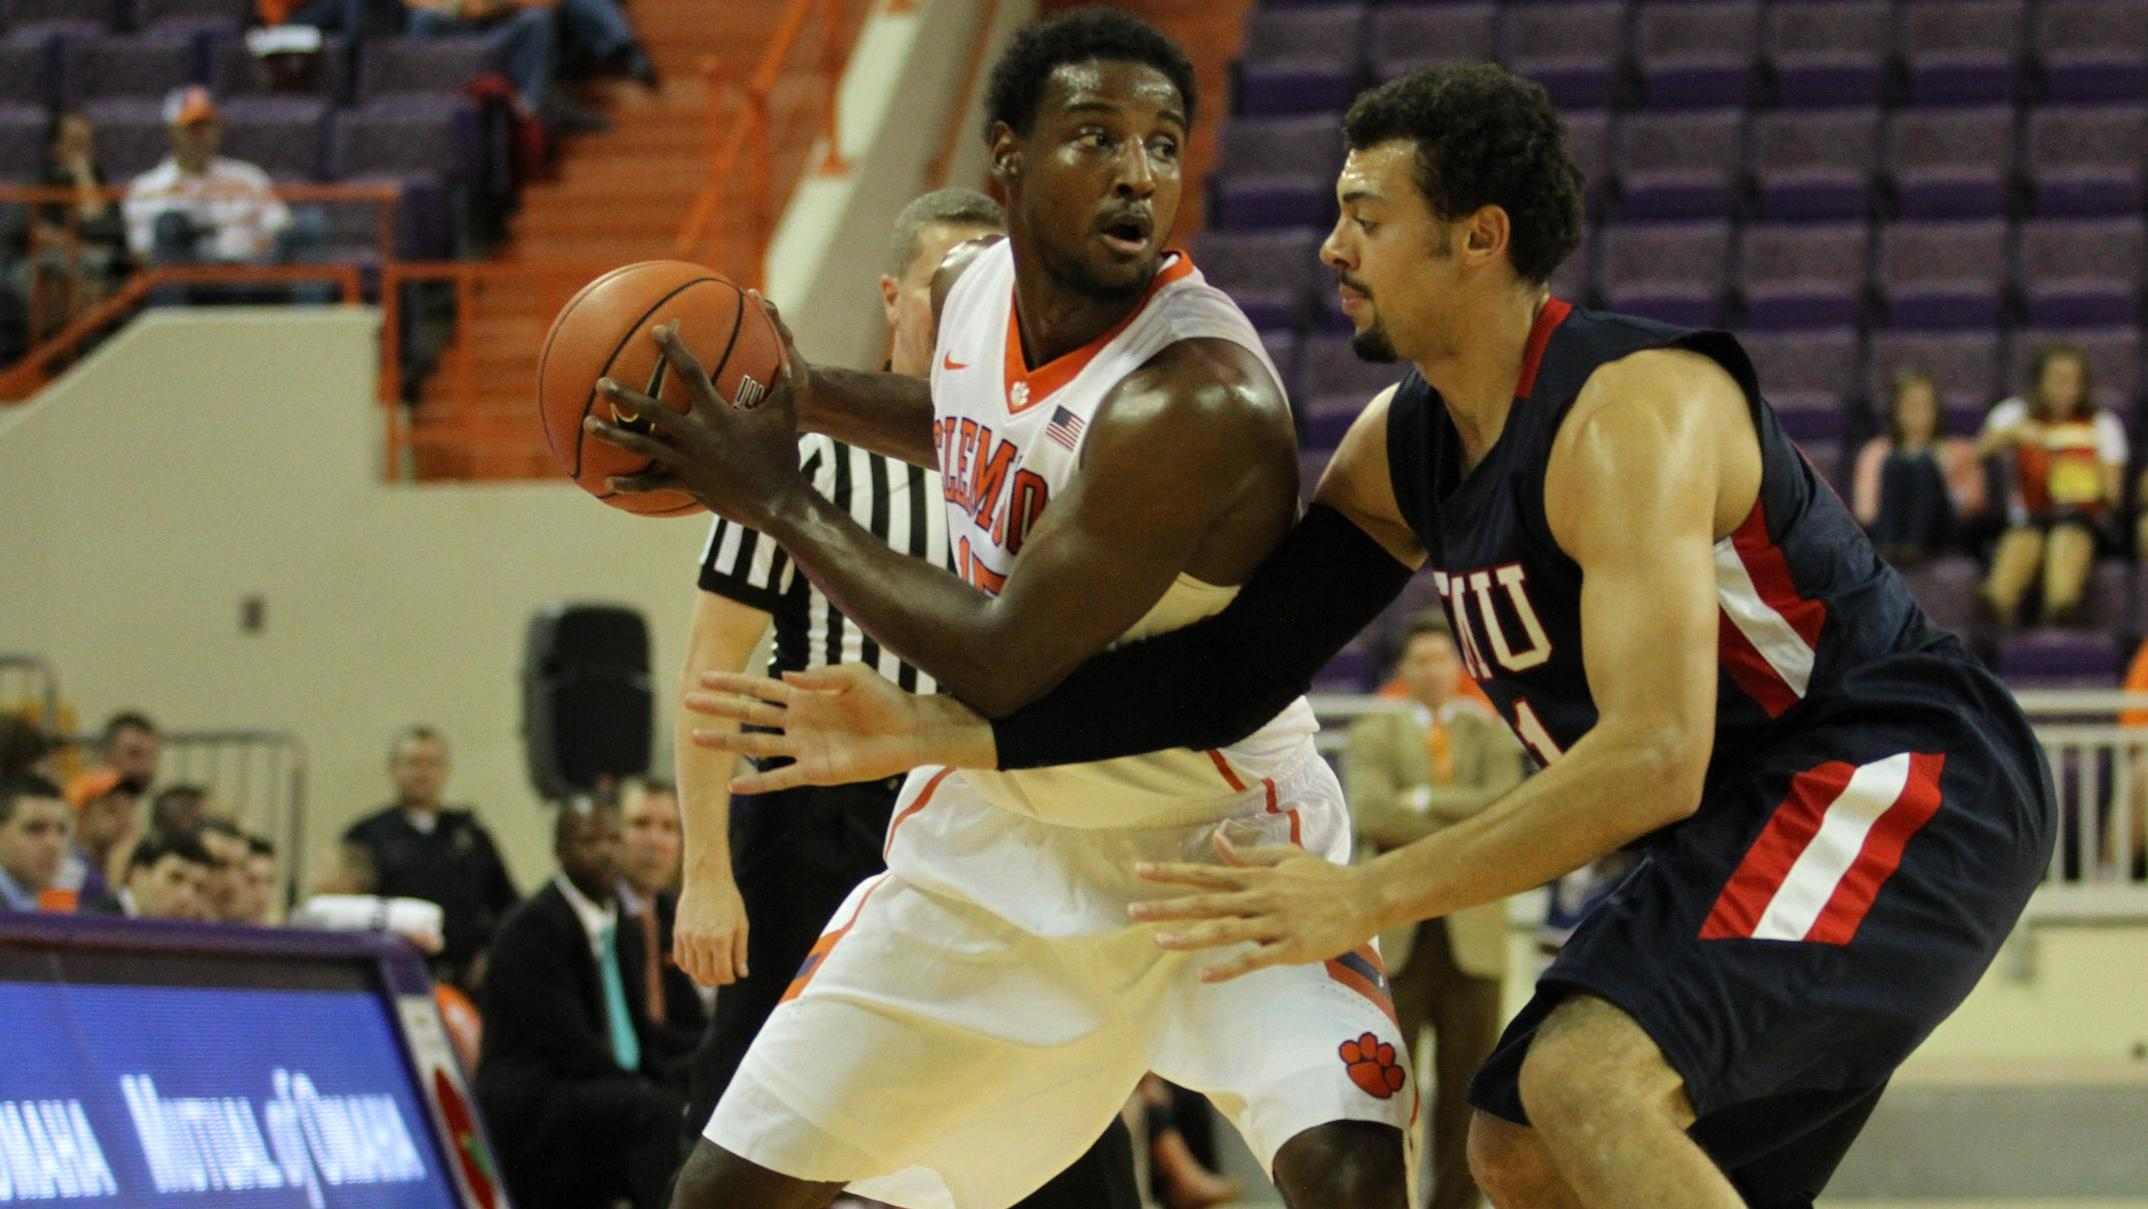 Tigers to Play Host to Stetson in Season Opener Friday